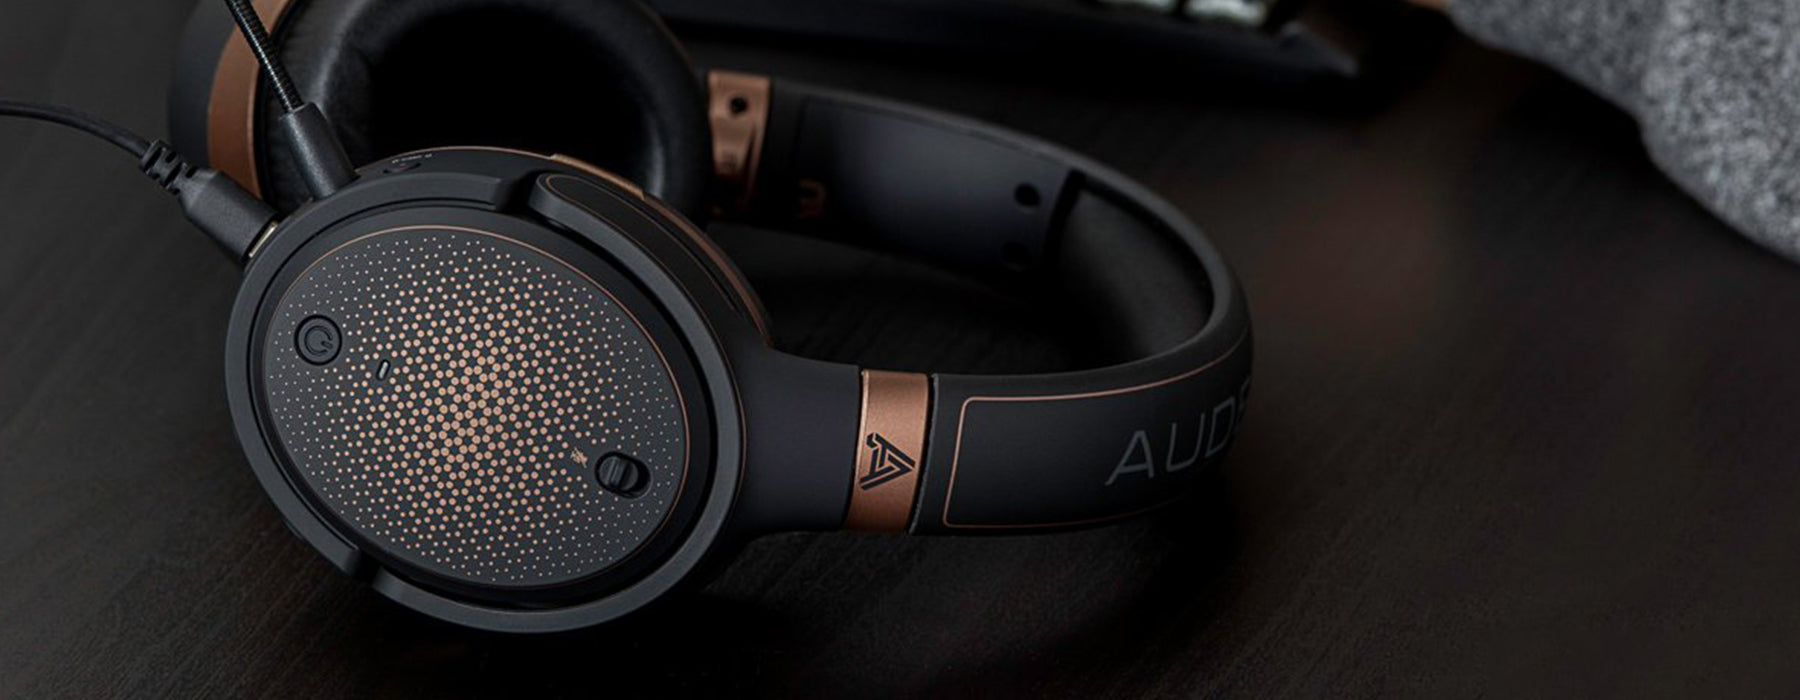 Audeze Headphones and Earphones